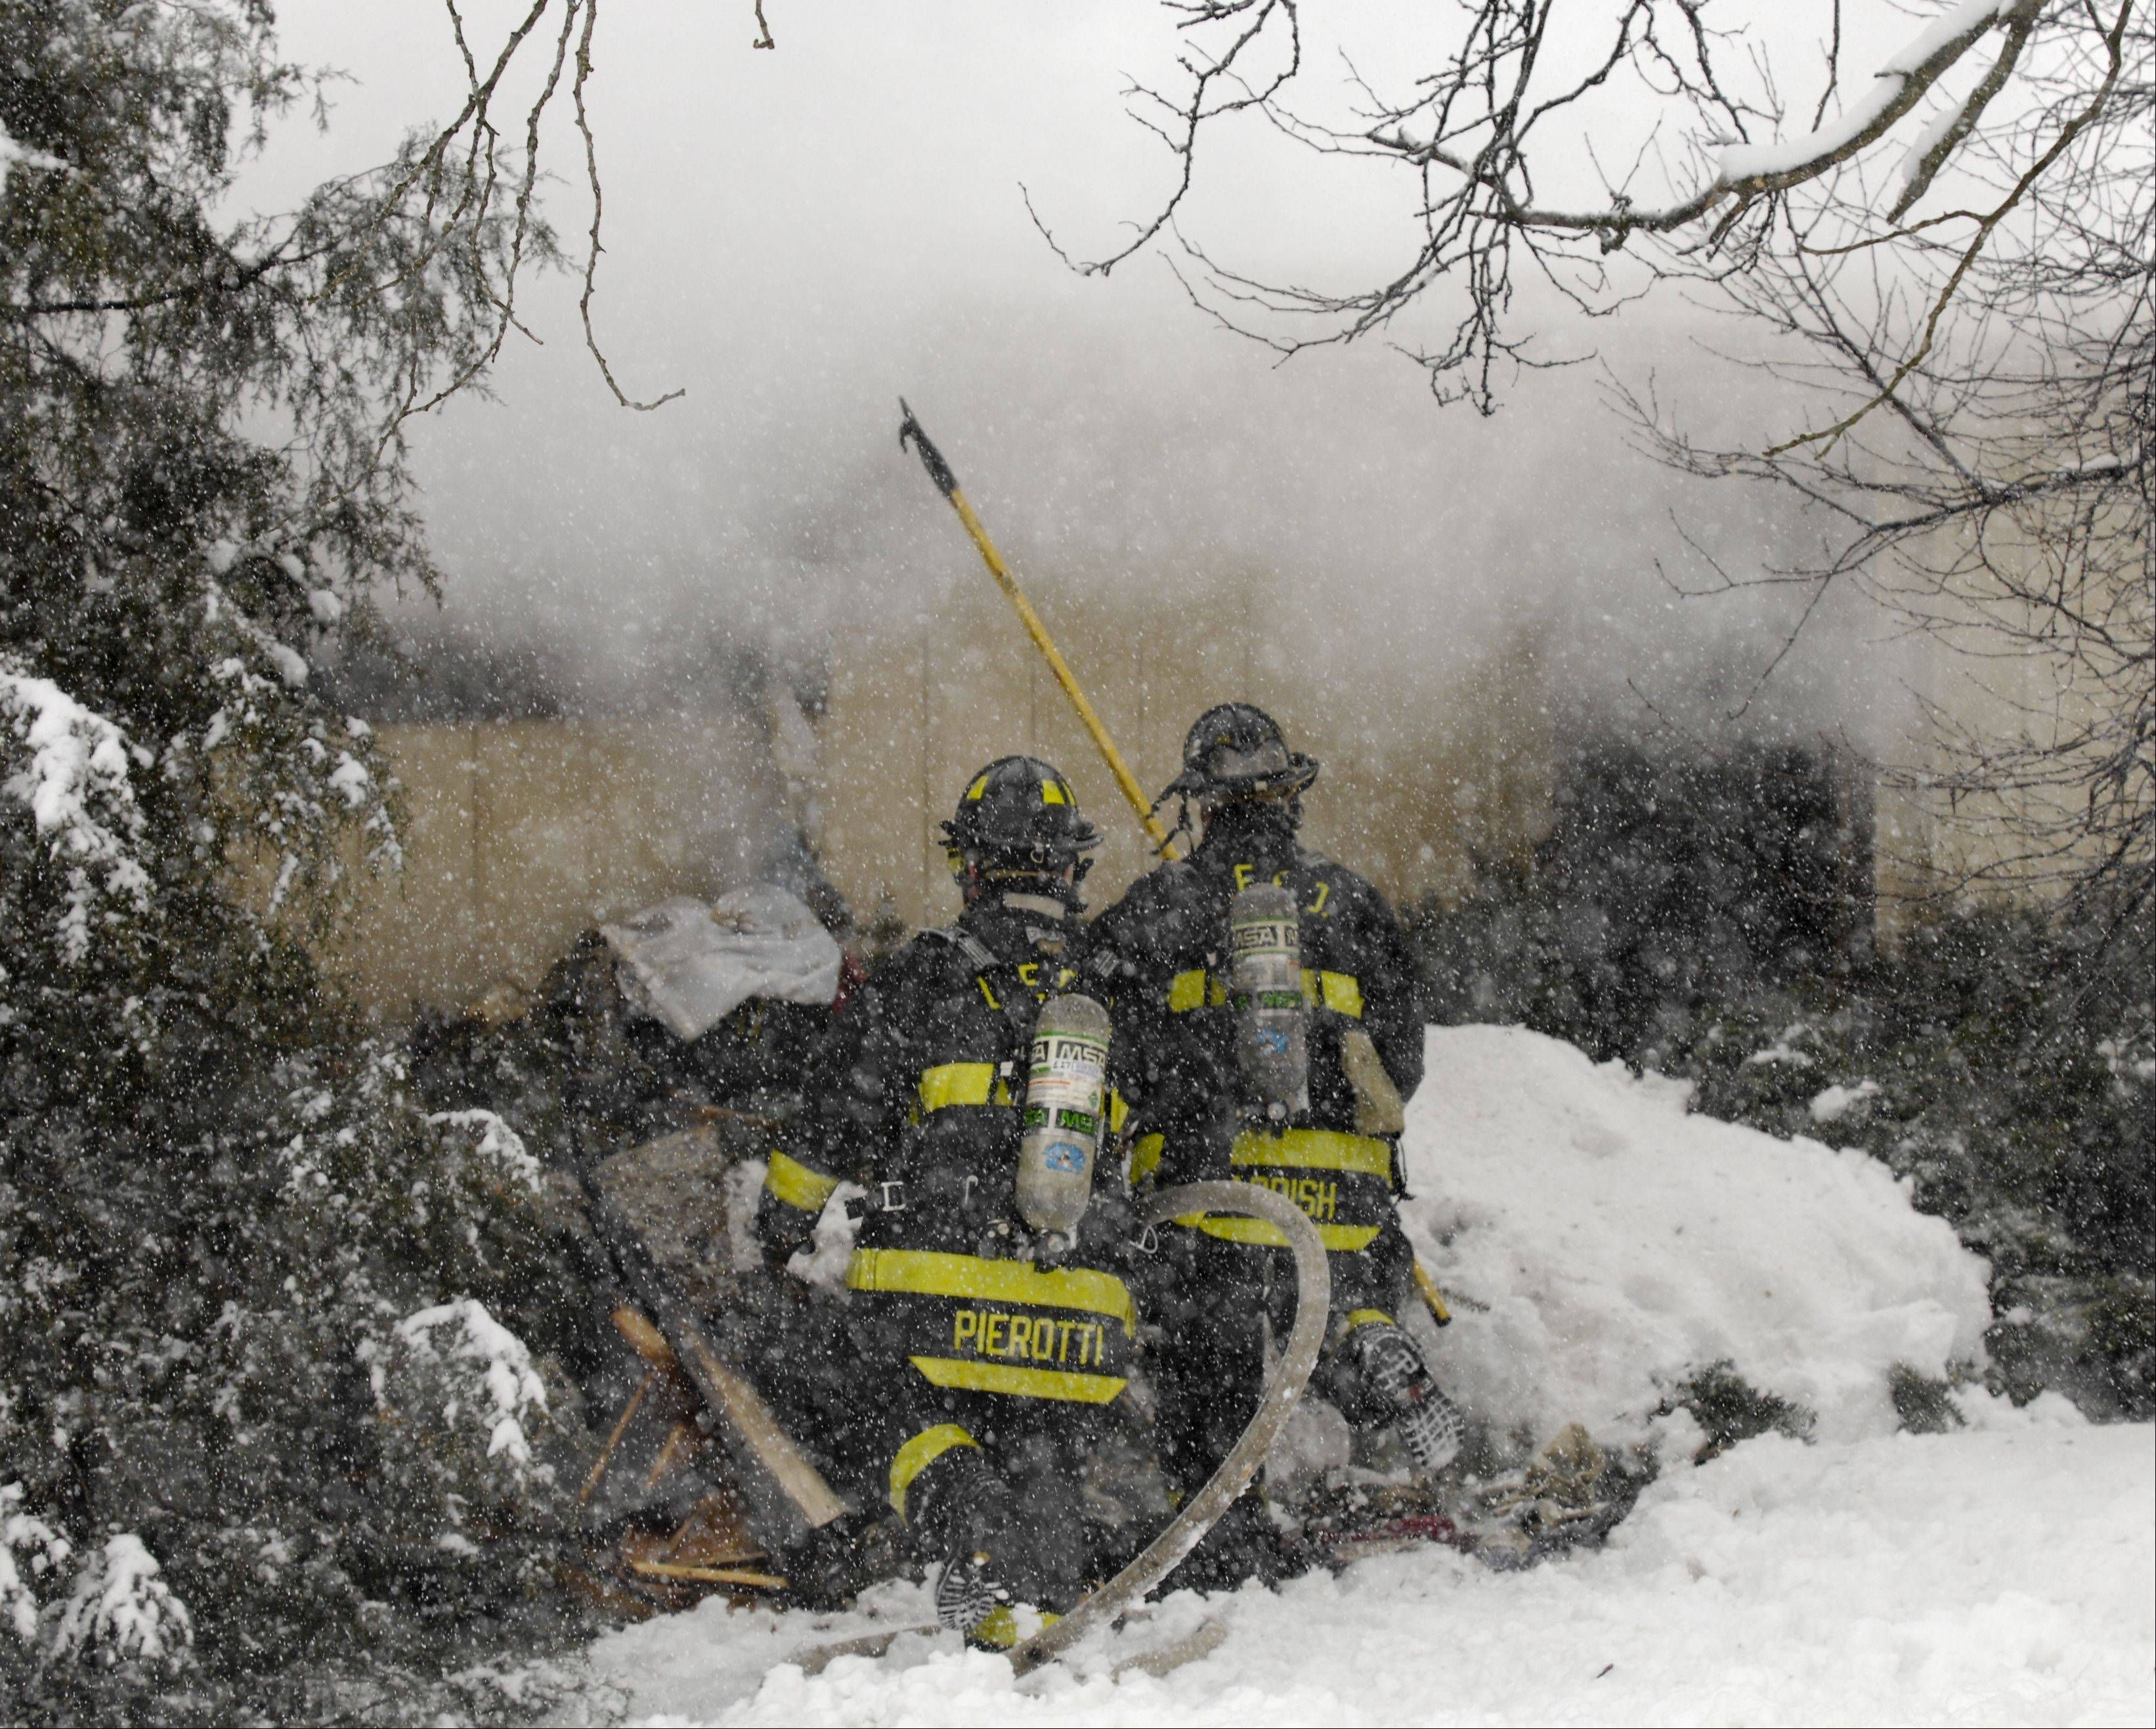 Firefighters battle a house fire Tuesday in an unincorporated area near Glen Ellyn. The fire caused extensive damage to a one-story home, but no injuries were reported.